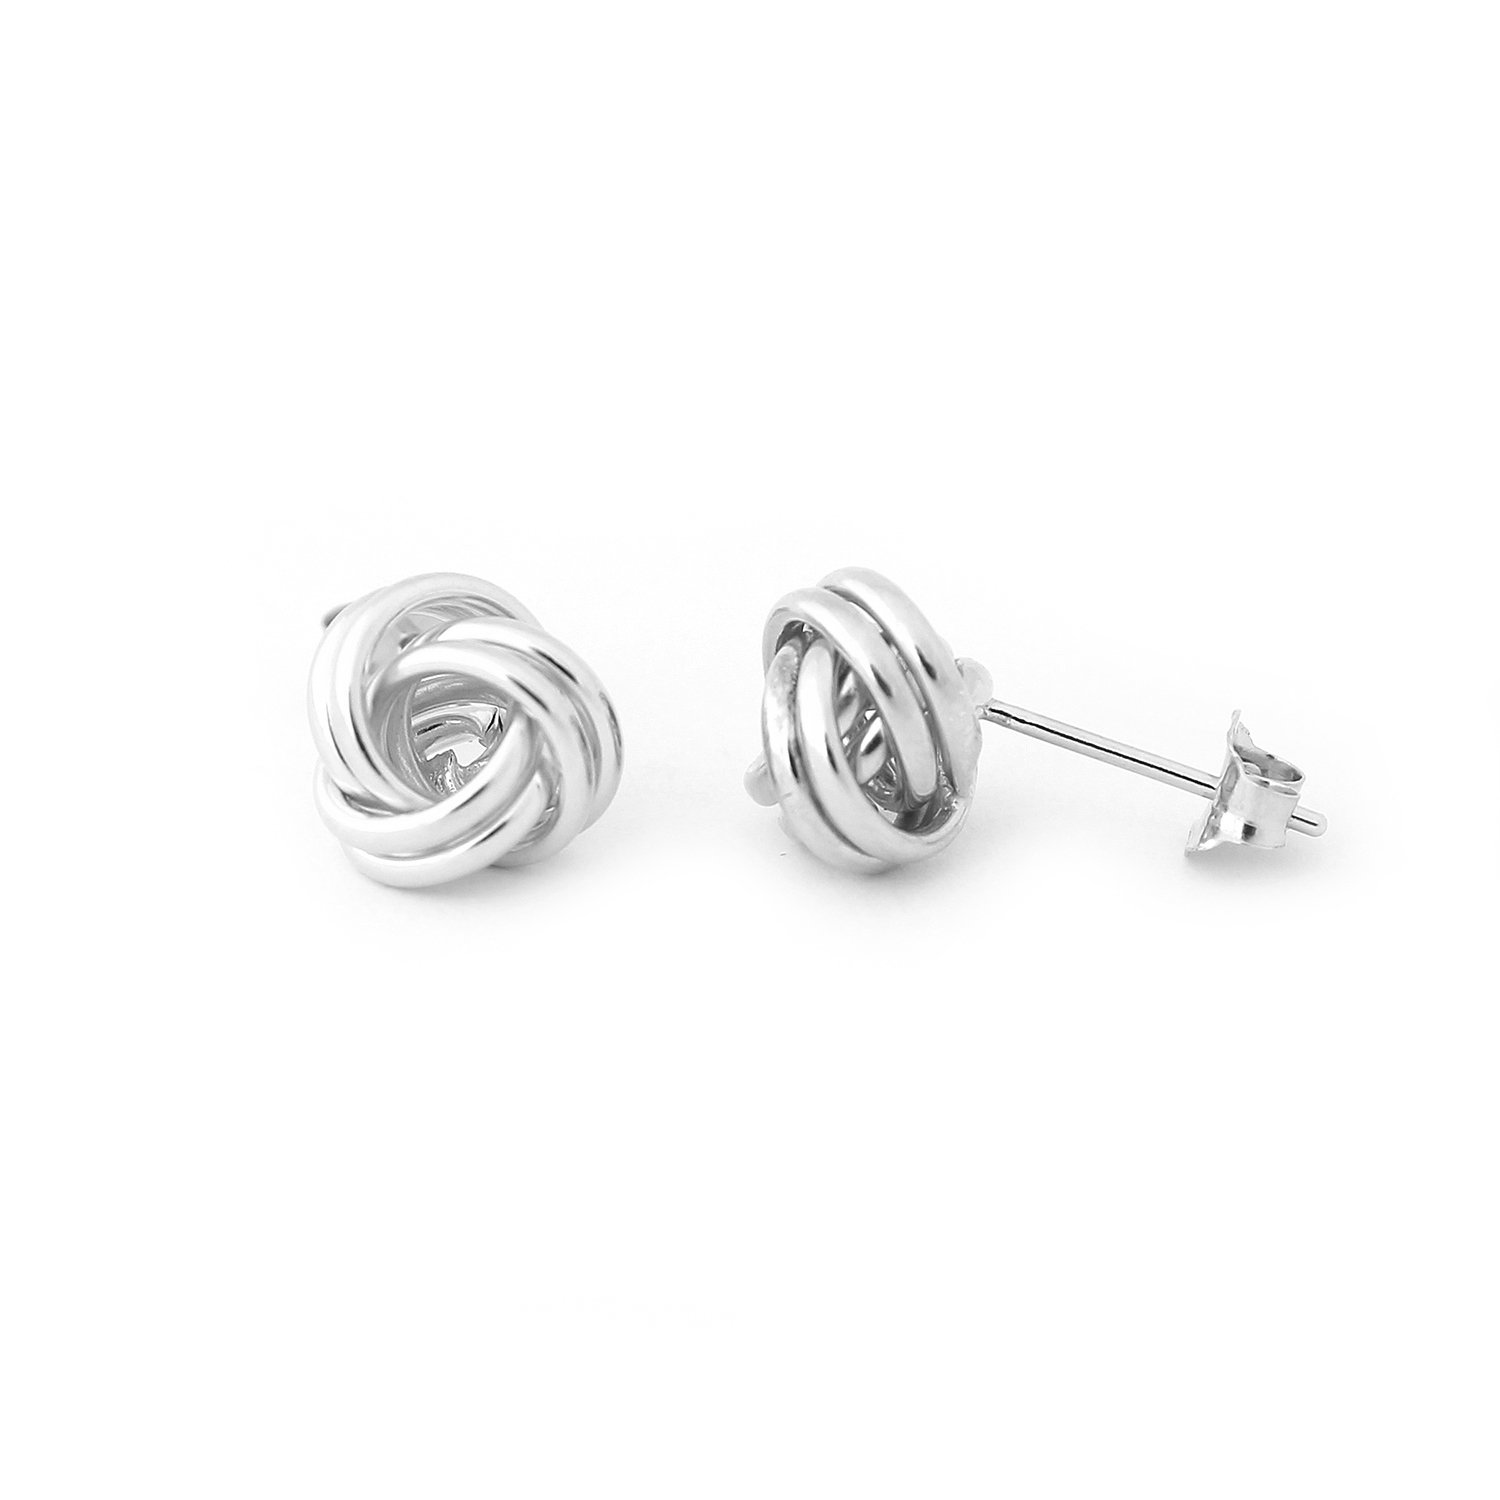 14k White Gold Love Knot Stud Earrings - 8mm